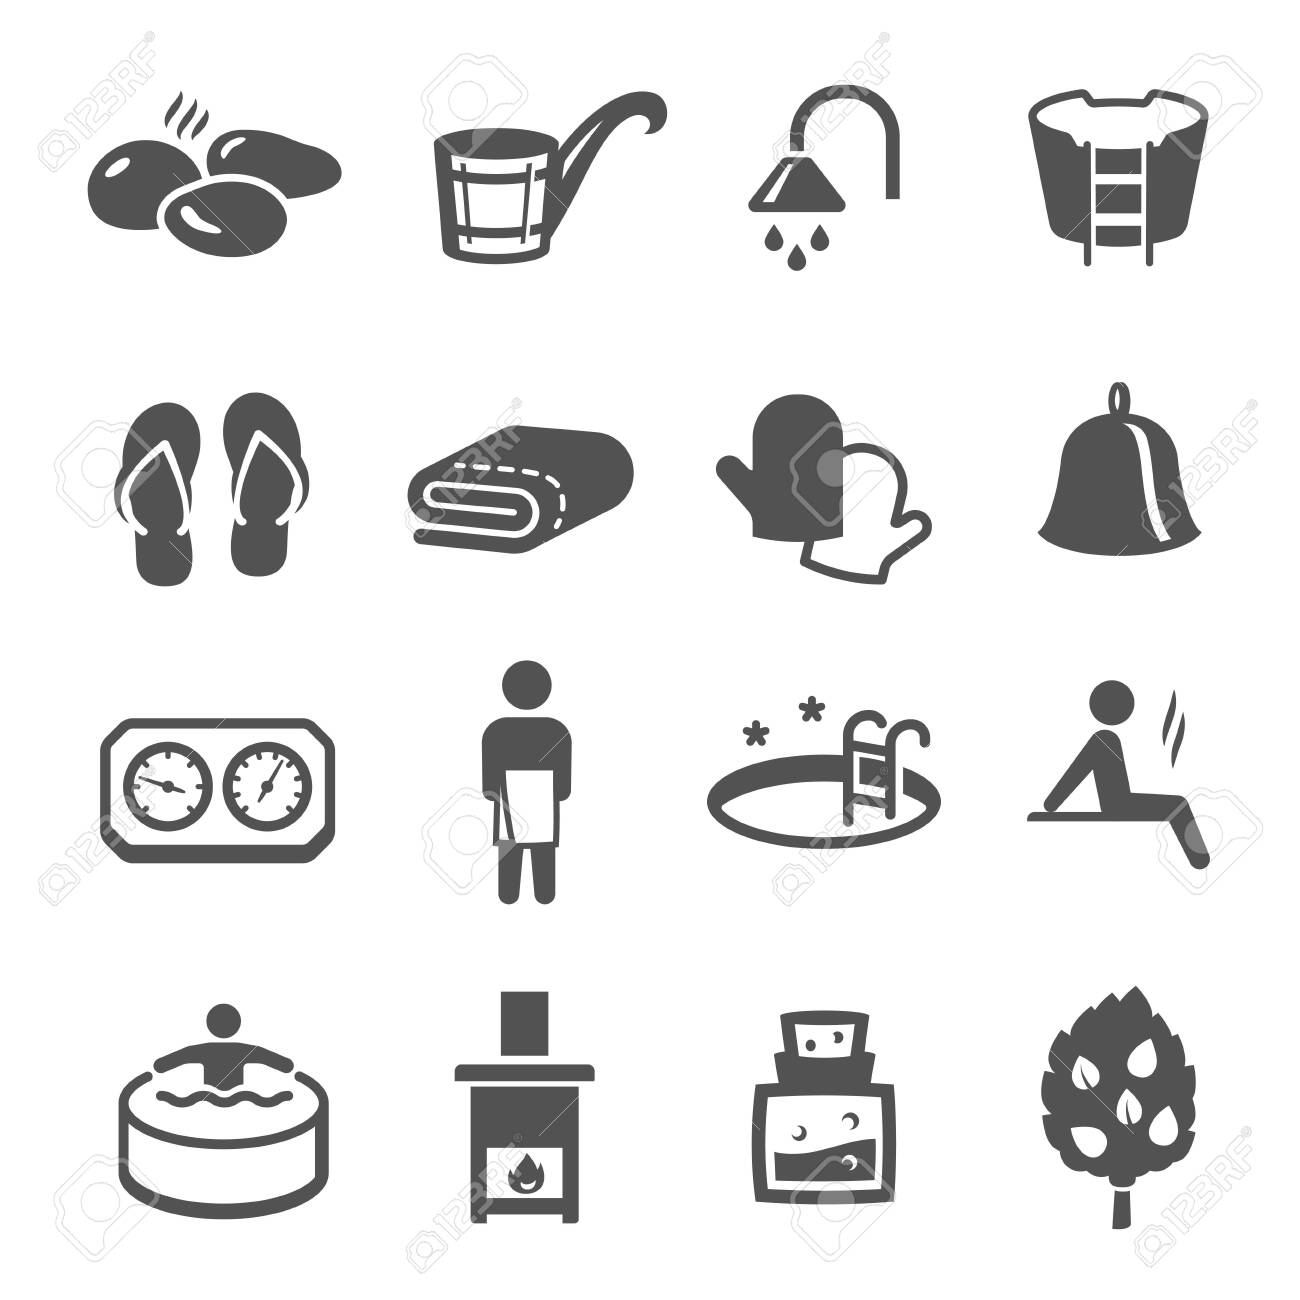 Sauna, bath black icons set isolated on white. Wellness, spa, health and body care pictograms collection, logos. Recreation, relaxation, rehabilitation, bathhouse vector elements for infographic, web. - 148042438